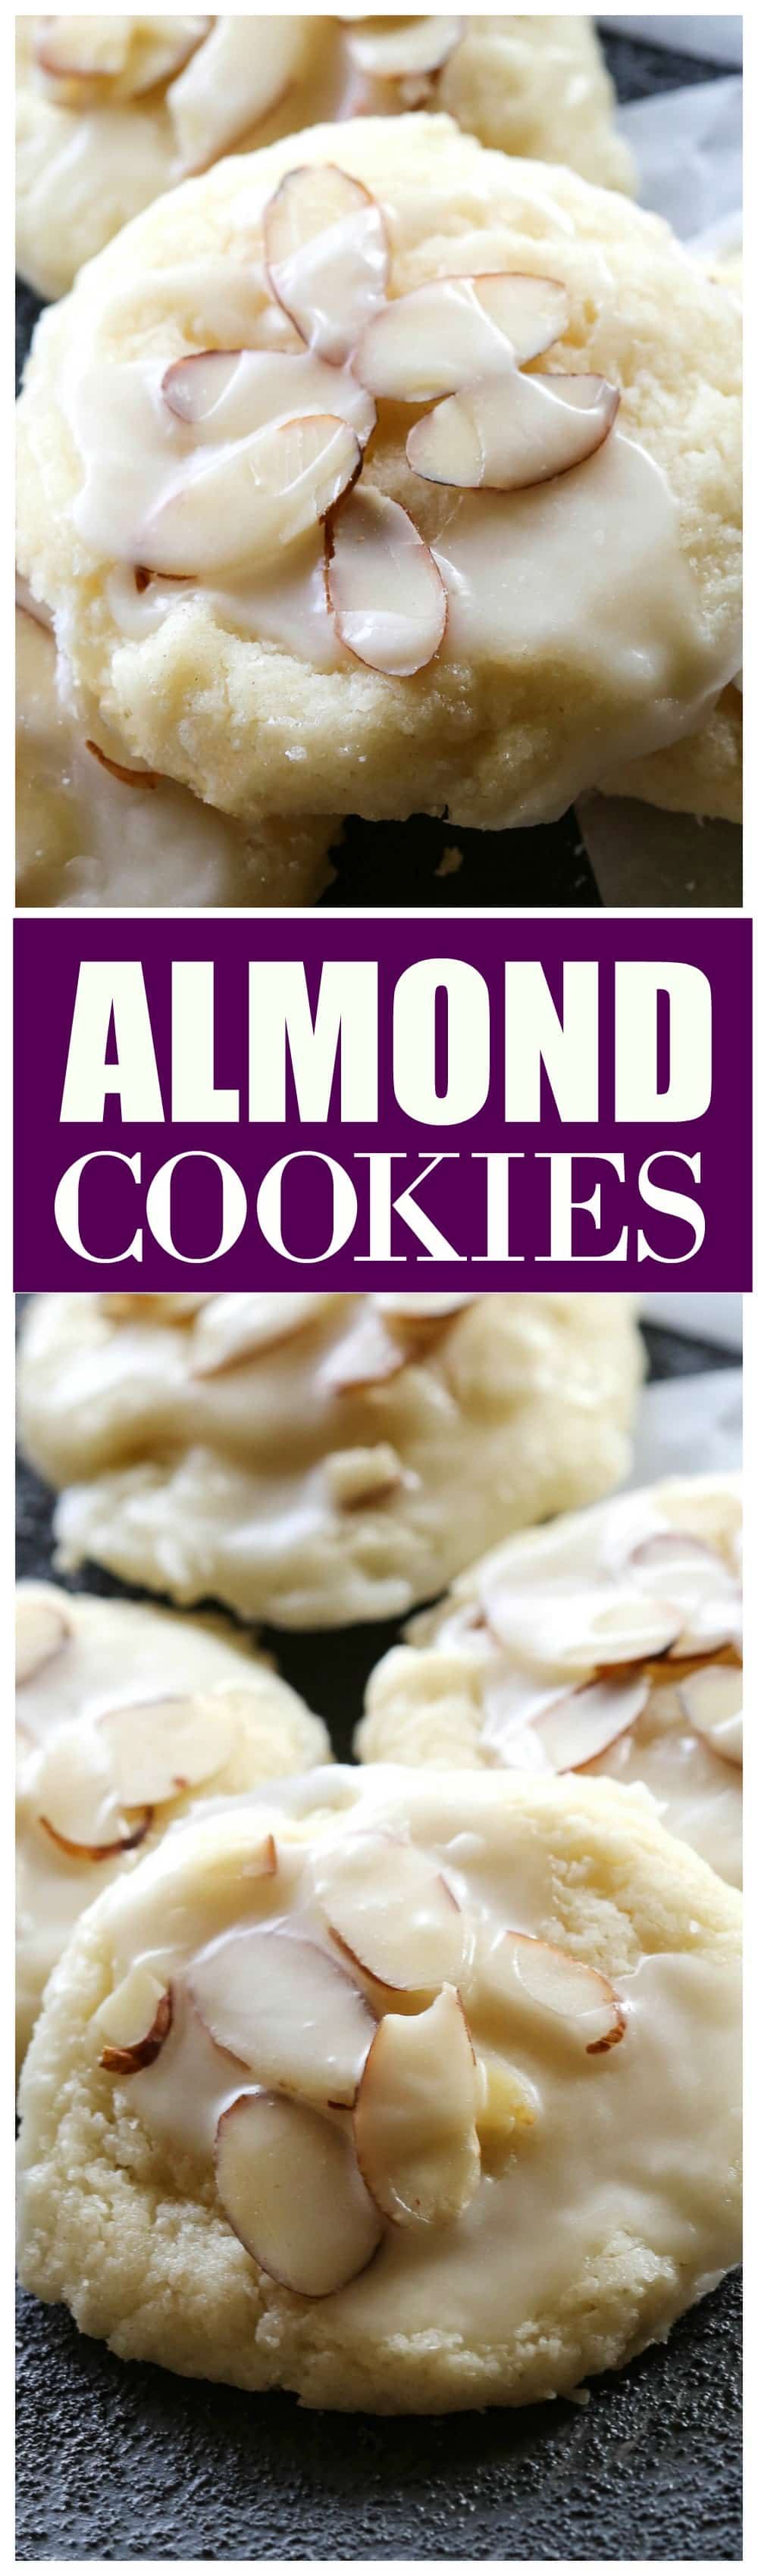 Almond Cookies - a family favorite we all love! #almond #cookies #dessert #recipe